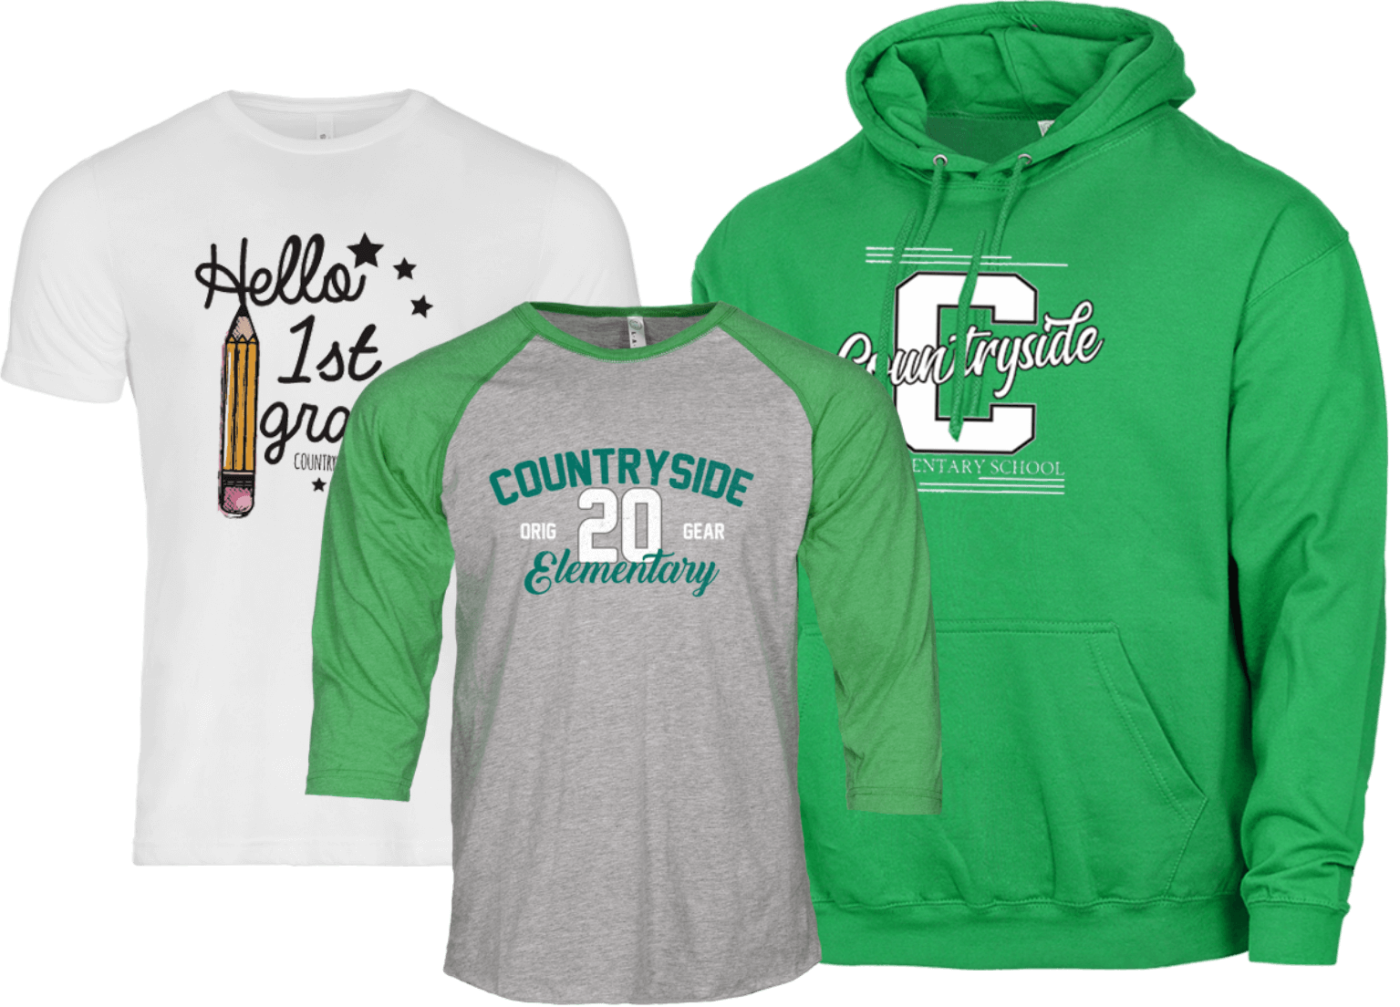 Examples of the types of shirts 1st Place Spiritwear can do for your class, school, and district